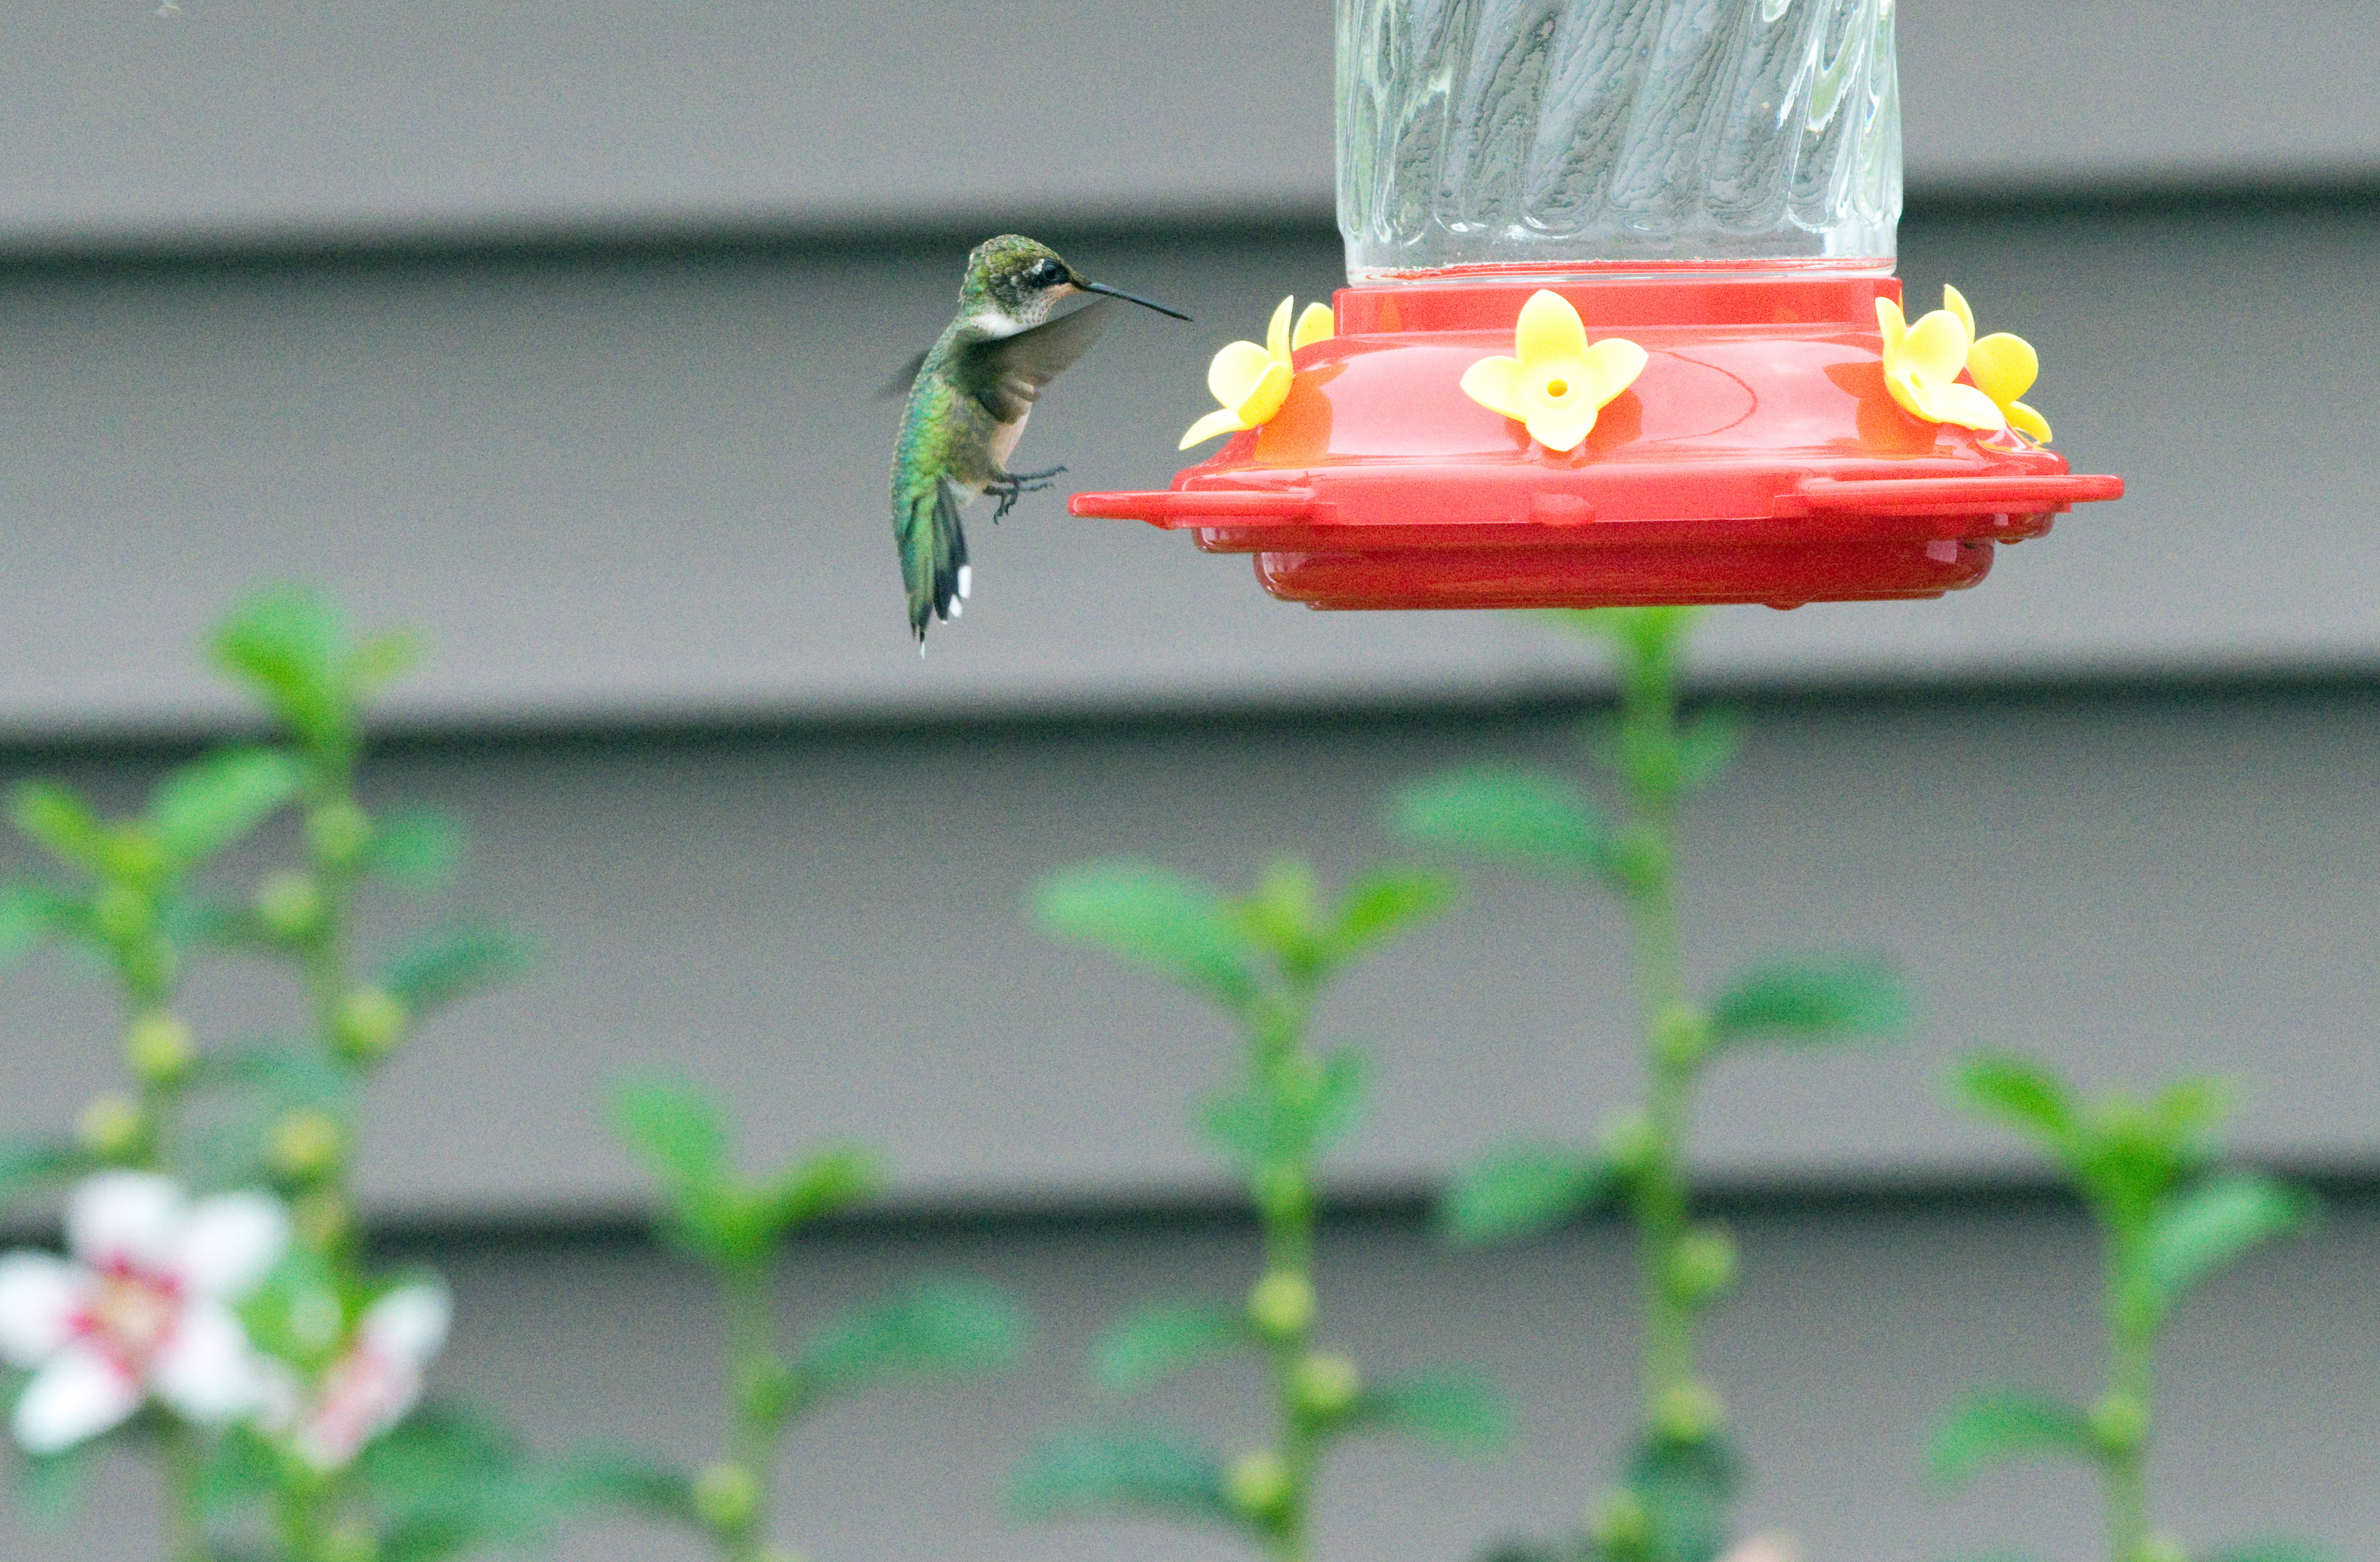 The Best Place To Put Hummingbird Feeders In The Yard Home Guides Sf Gate,How To Make Sweet Potato Pie From Scratch